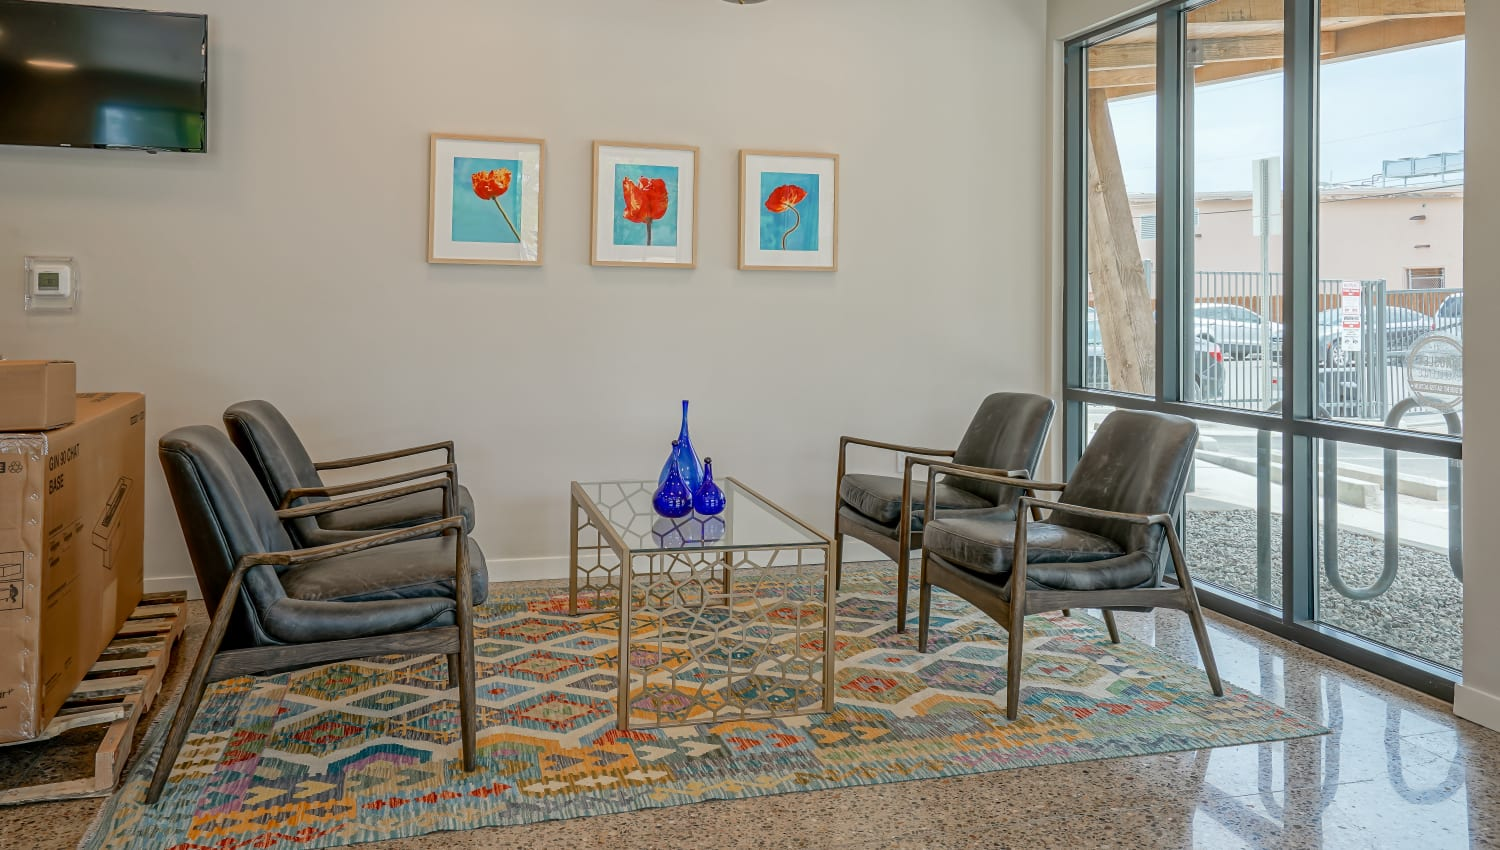 Seating in the lobby at Capitol Flats in Santa Fe, New Mexico